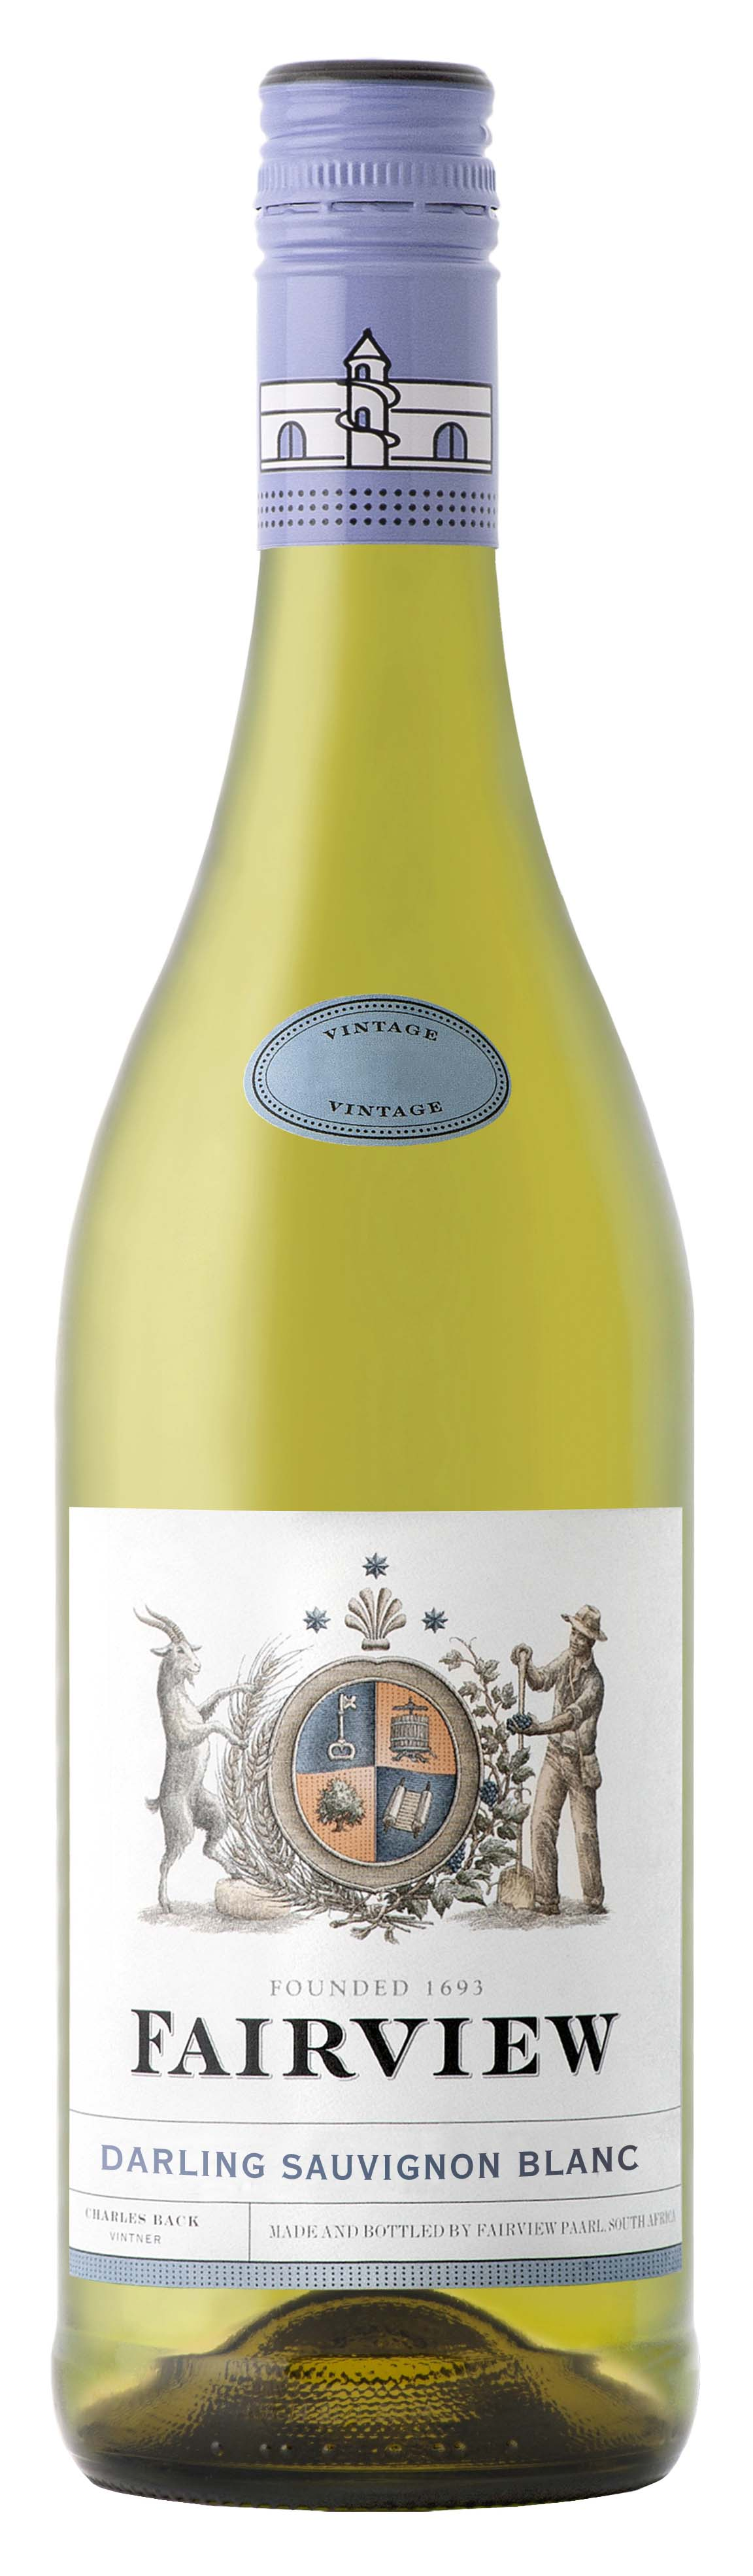 Fairview, Darling Sauvignon Blanc 2017